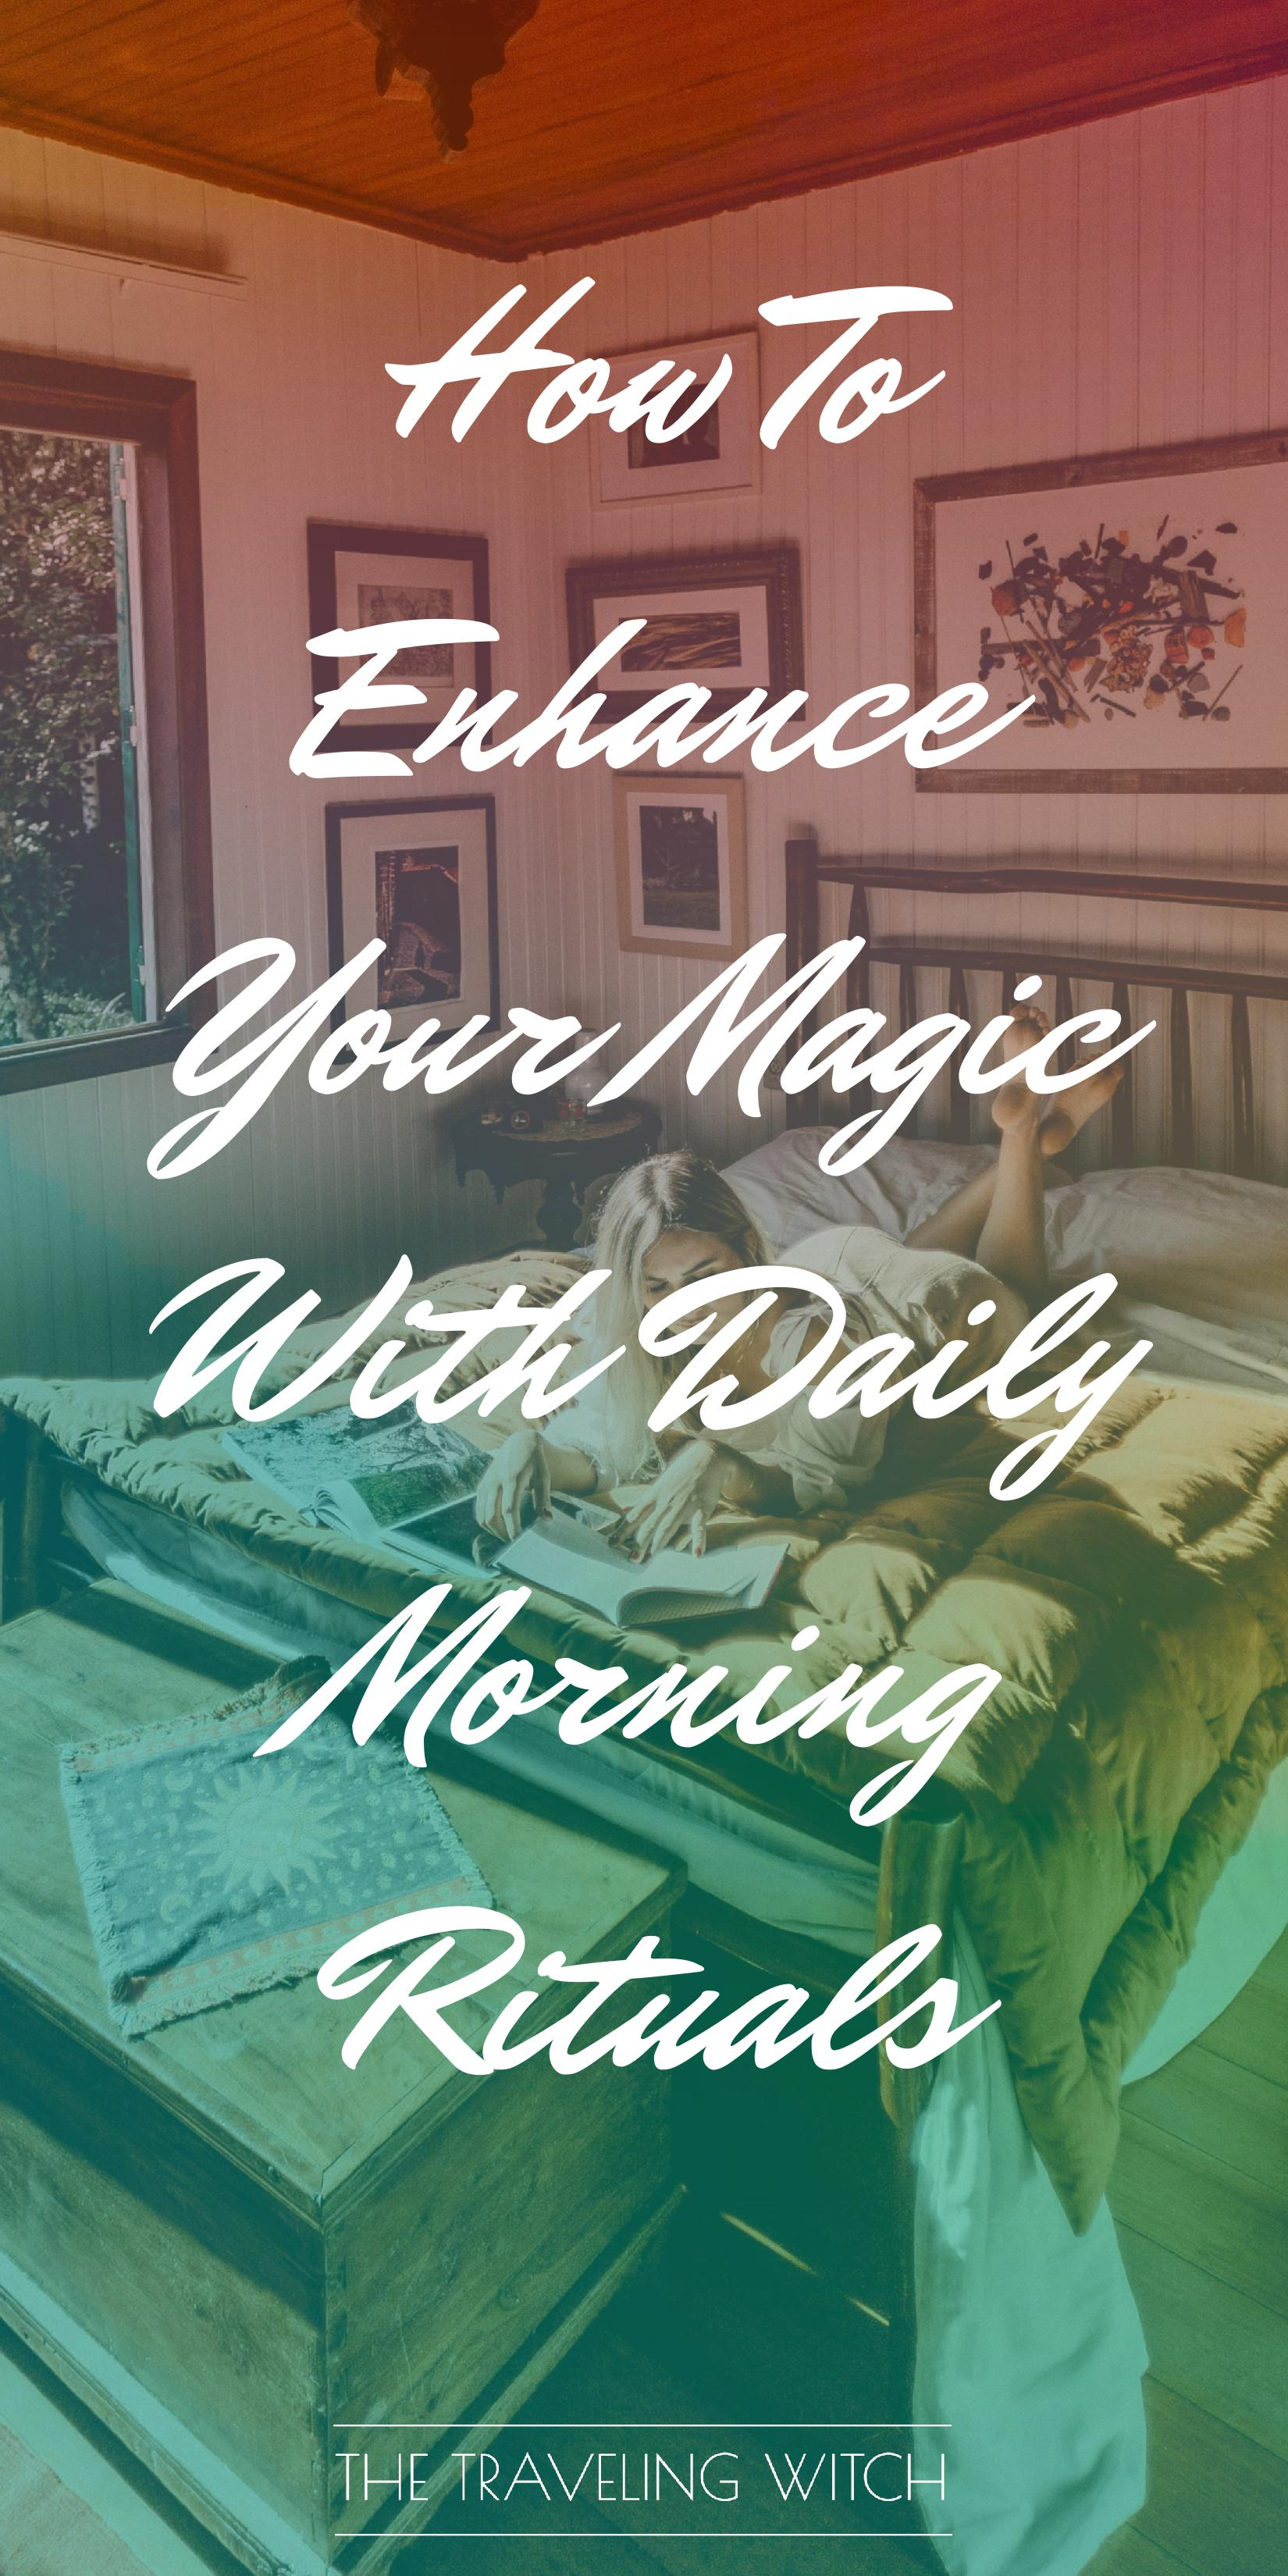 How To Enhance Your Magic With Daily Morning Rituals by The Traveling Witch